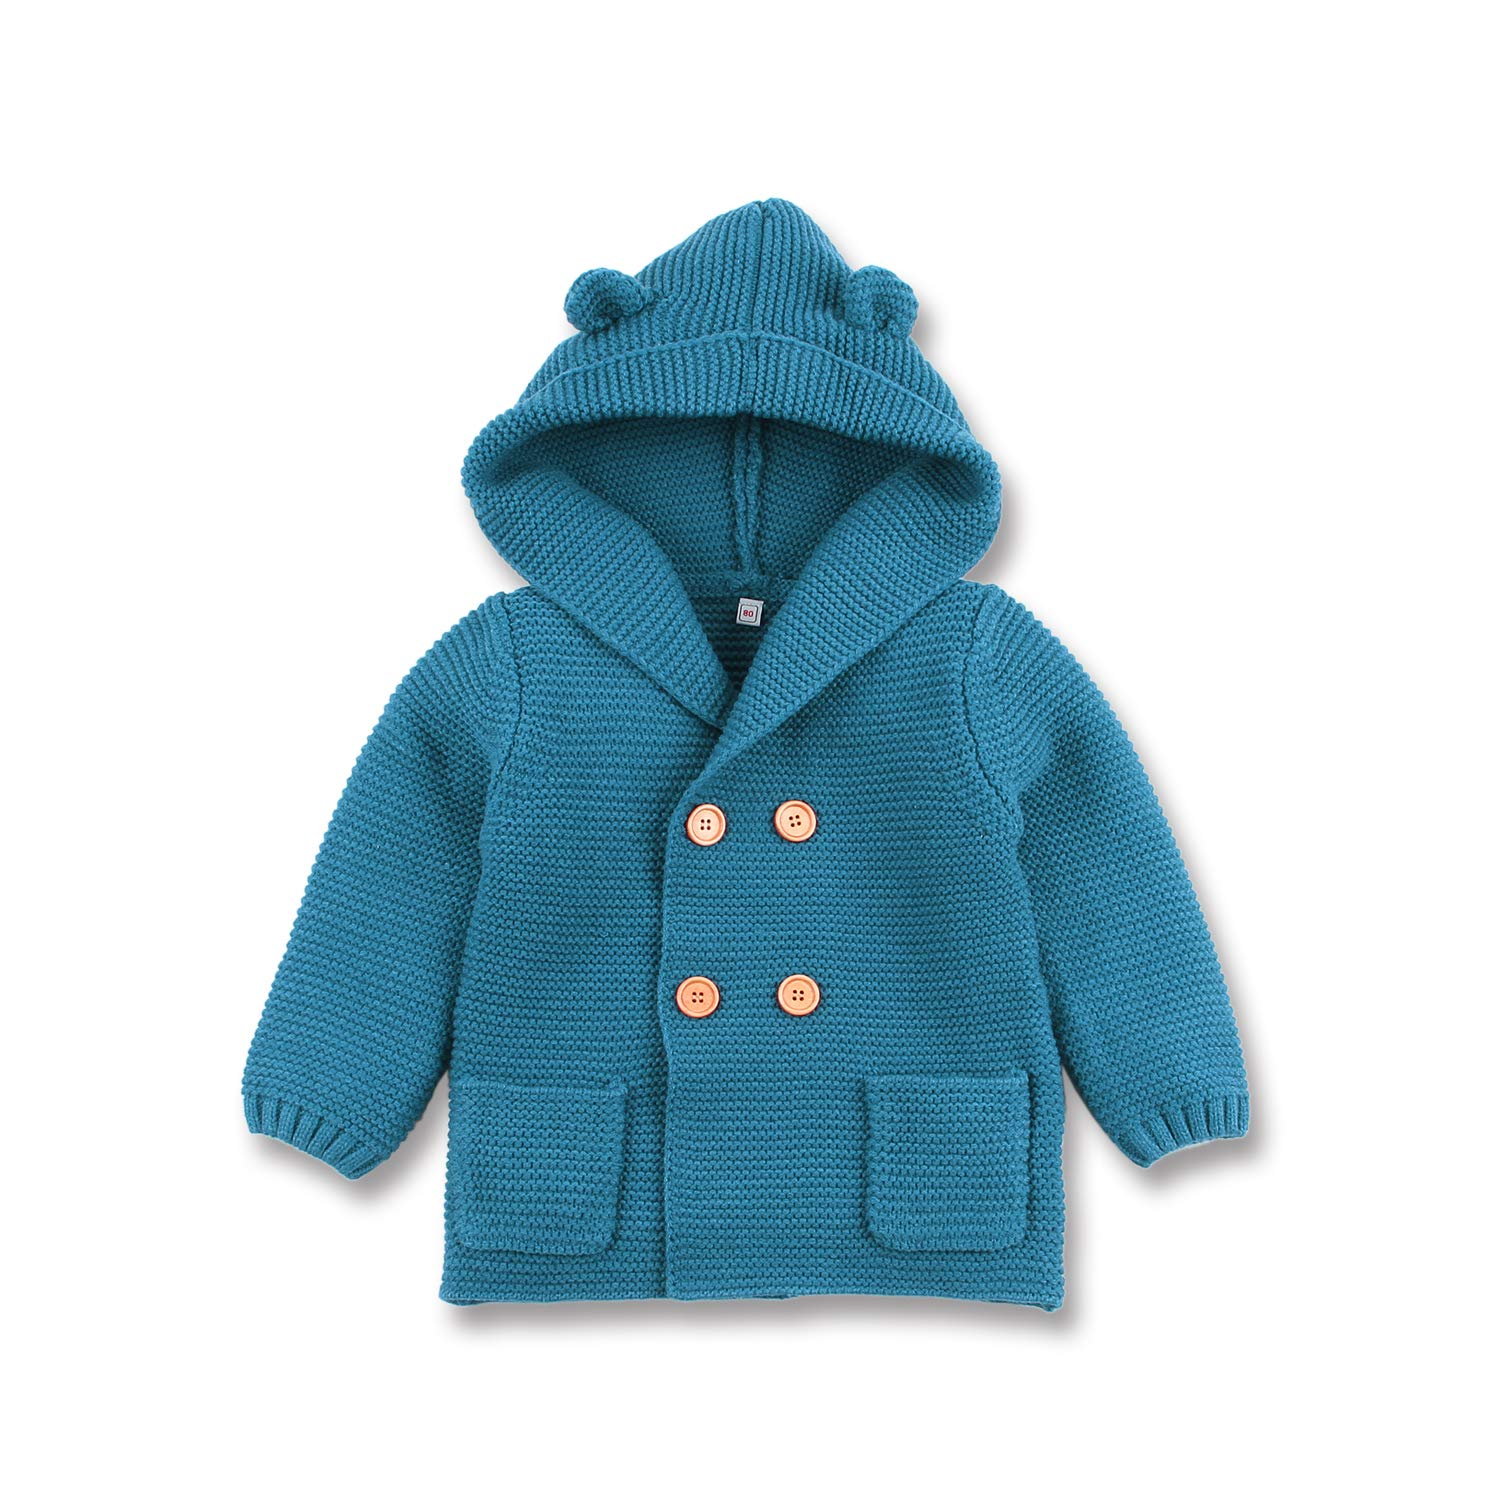 mimixiong Baby Sweater Cardigan Boy Jackets Long Sleeve Hooded Coats